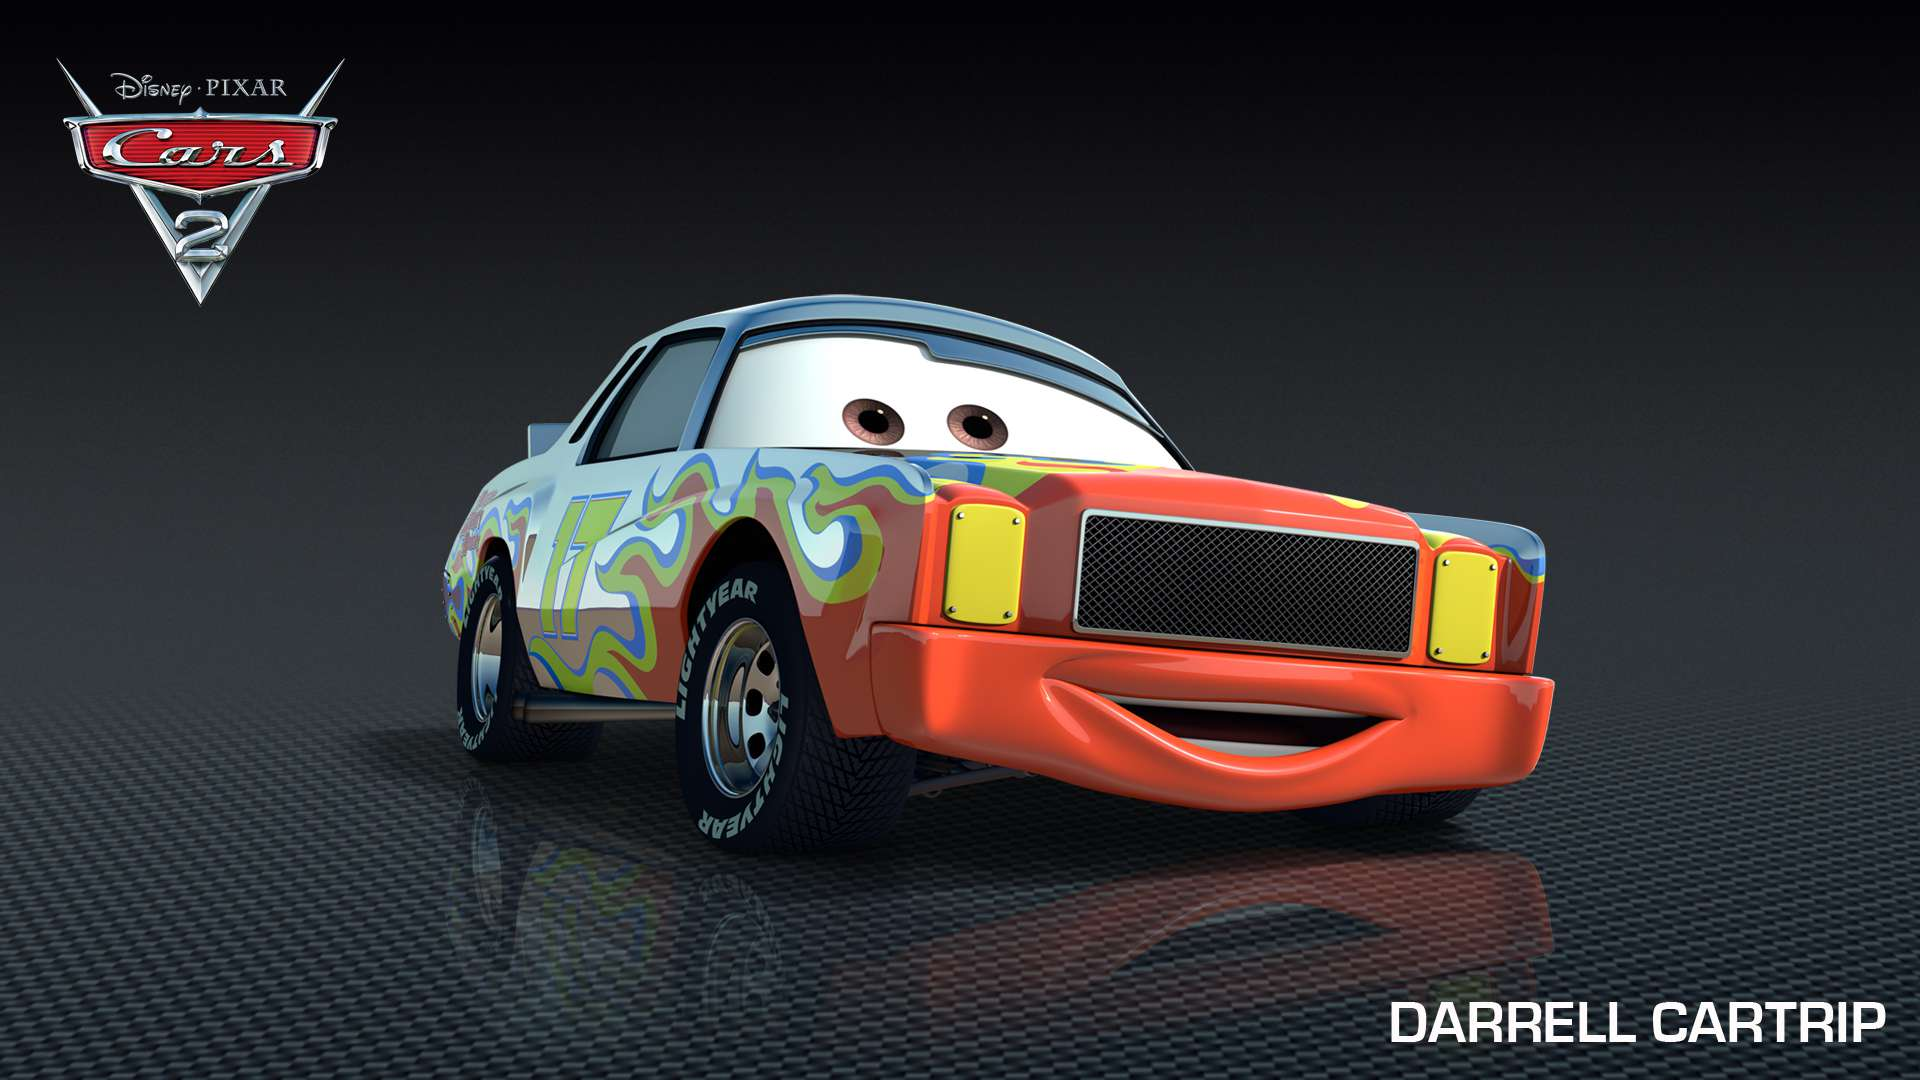 Cars 2 Characters Characters In Disney Pixar Cars 2